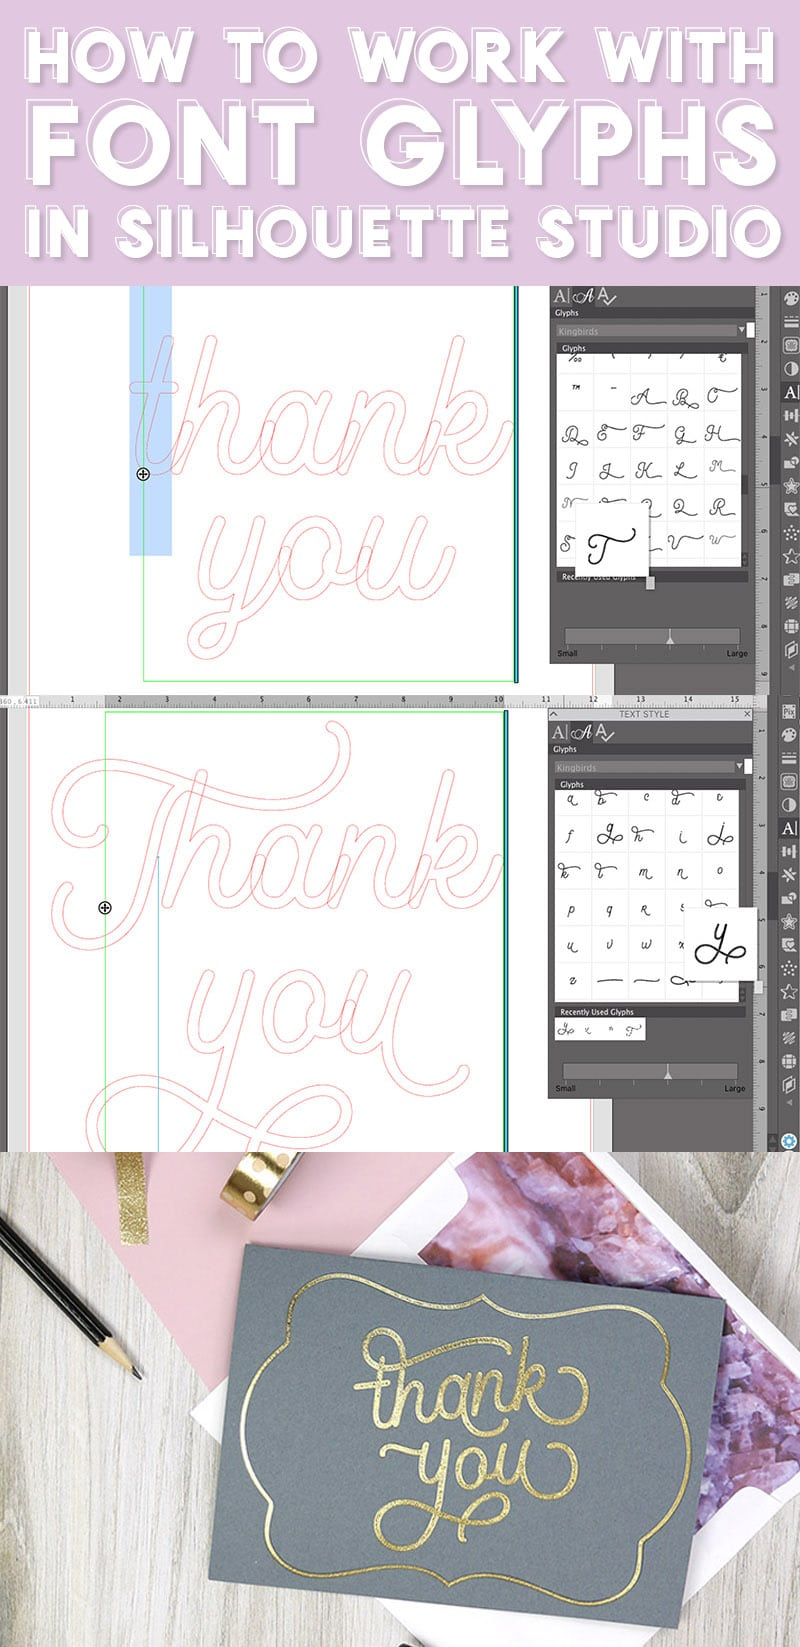 collage image of screenshots demonstrating how to use glyphs in the silhouette studio software